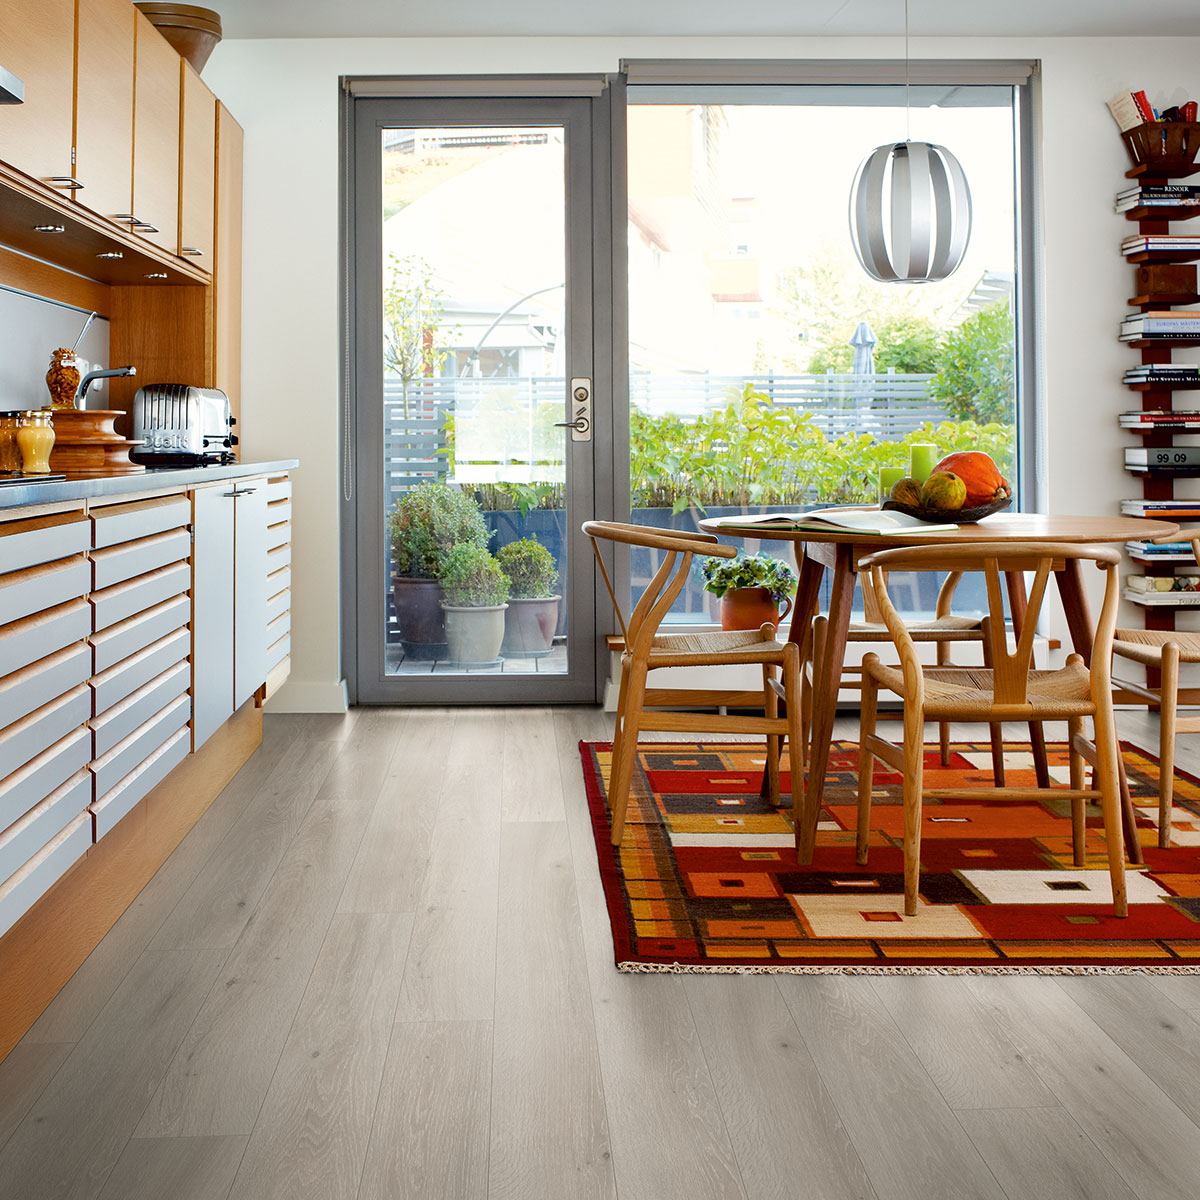 Laminatgolv Pergo Long Plank 4V Cottage Grey Oak 1-Stav